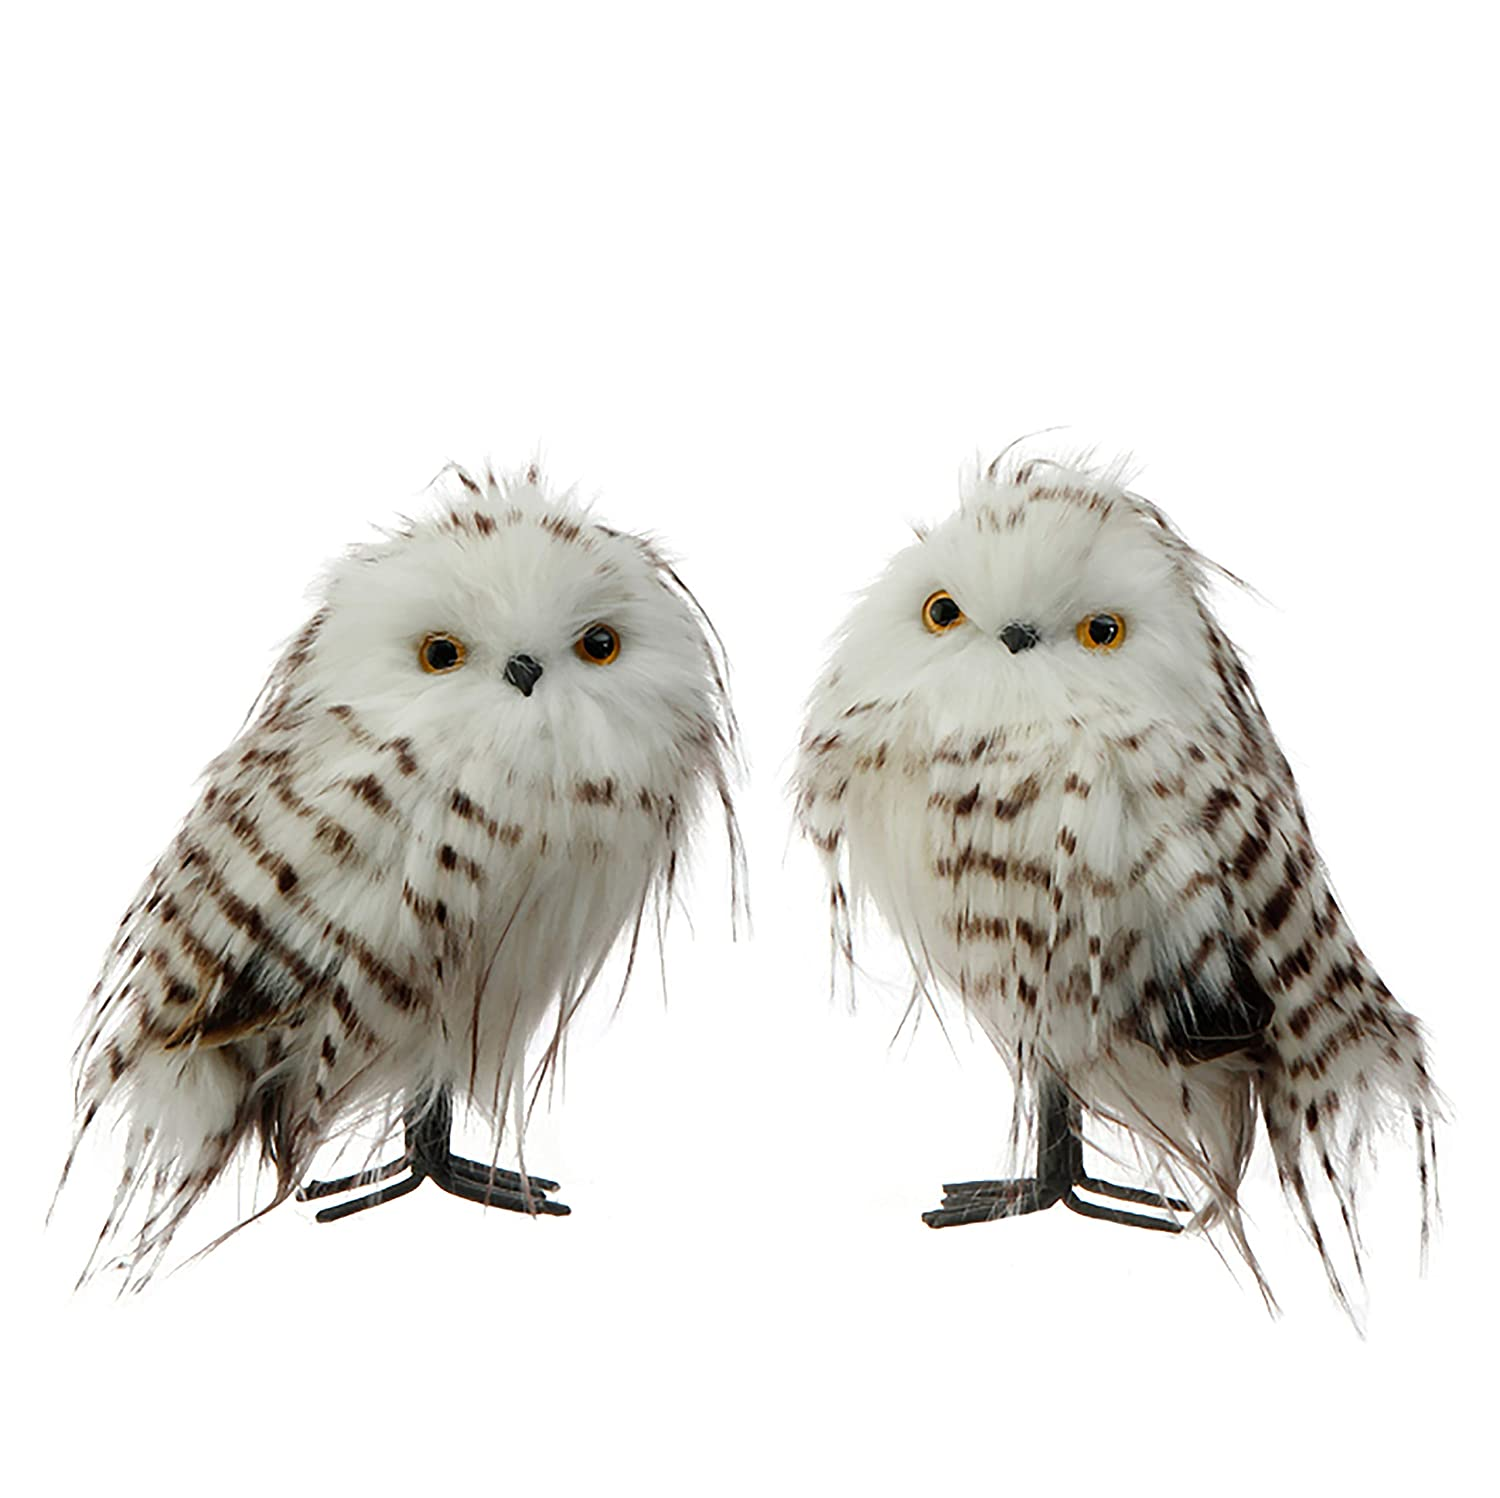 Snowy Brown and White Owl Figurines Set of 2 - ChristmasTablescapeDecor.com